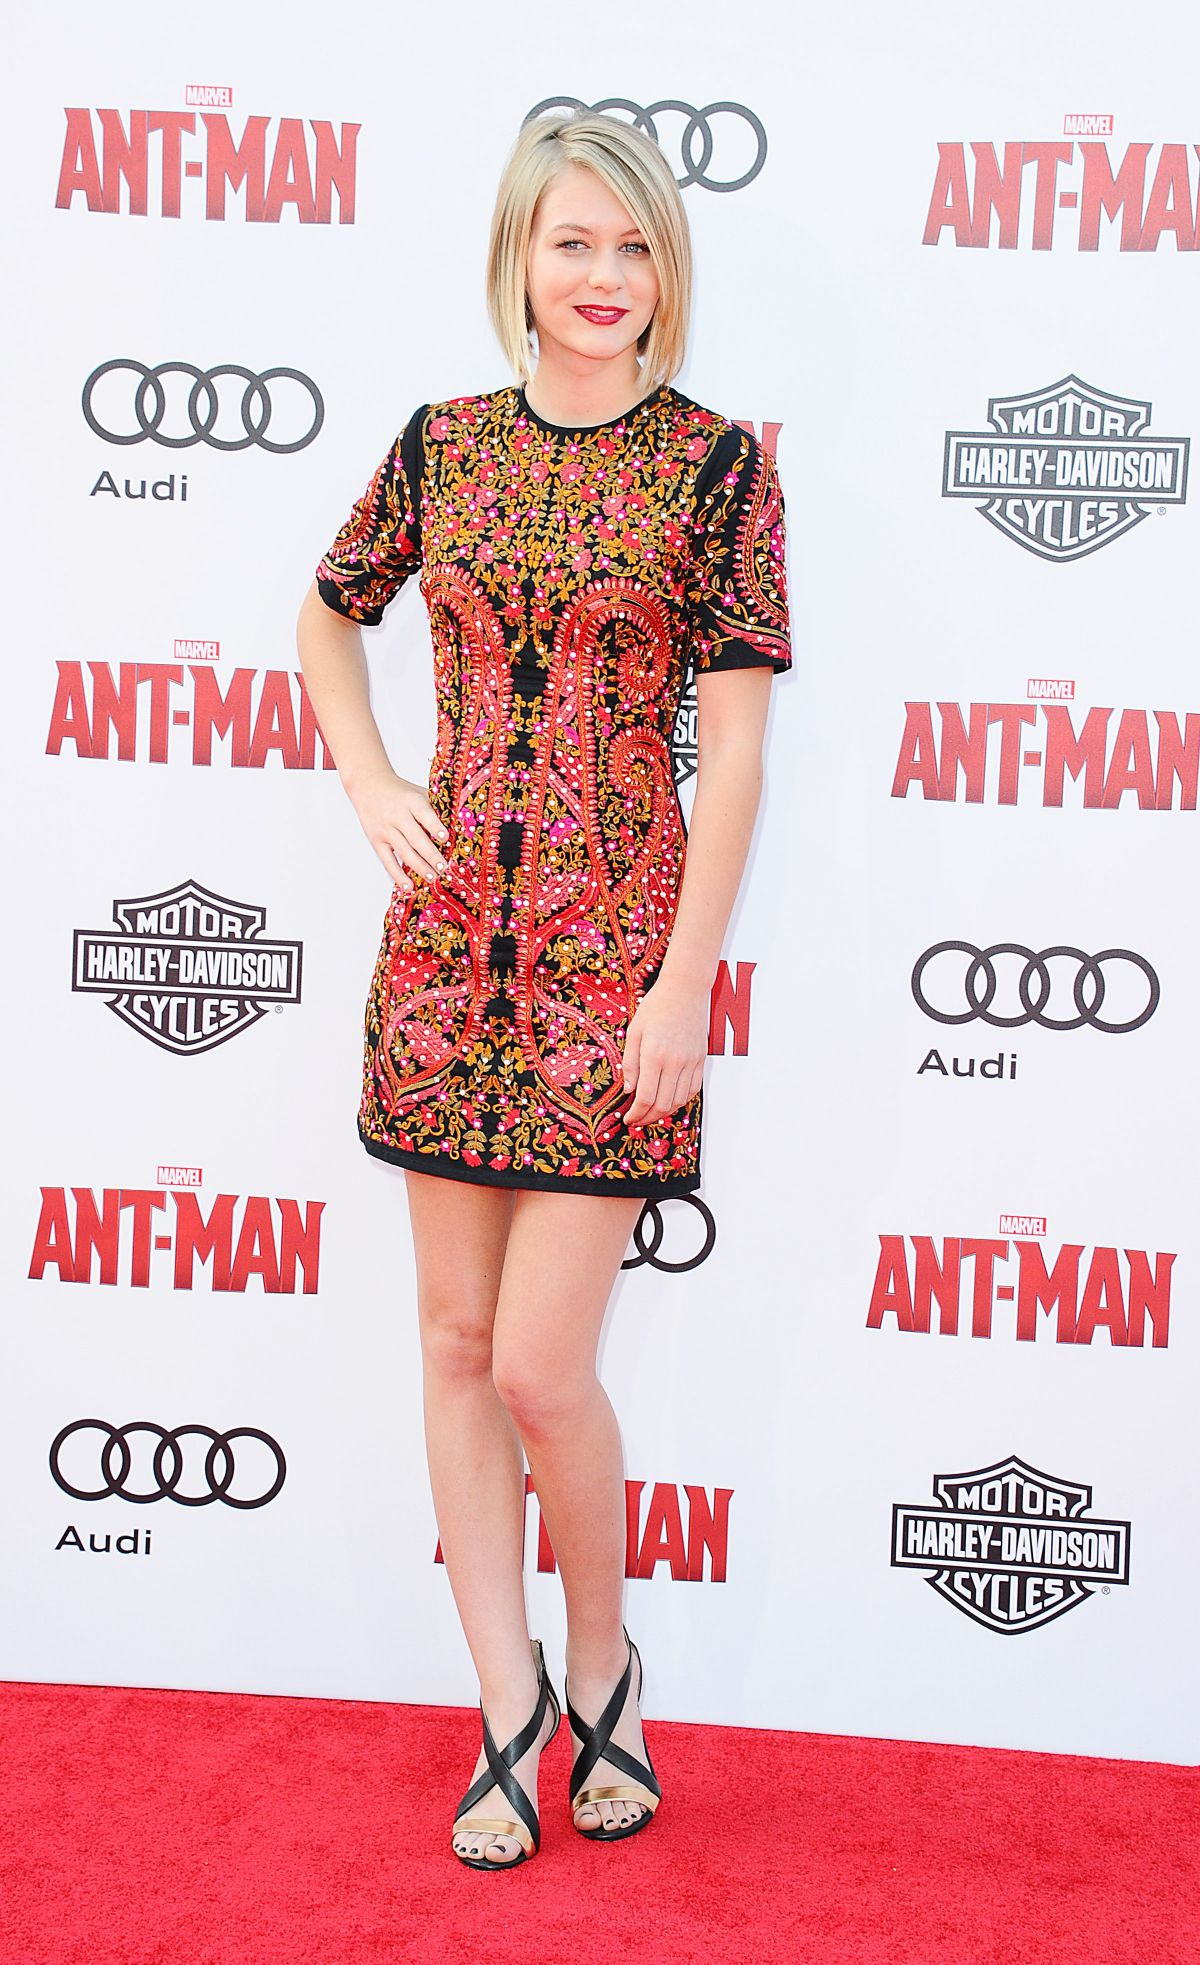 RYAN SIMPKINS at Ant-man Premiere in Hollywood – HawtCelebs